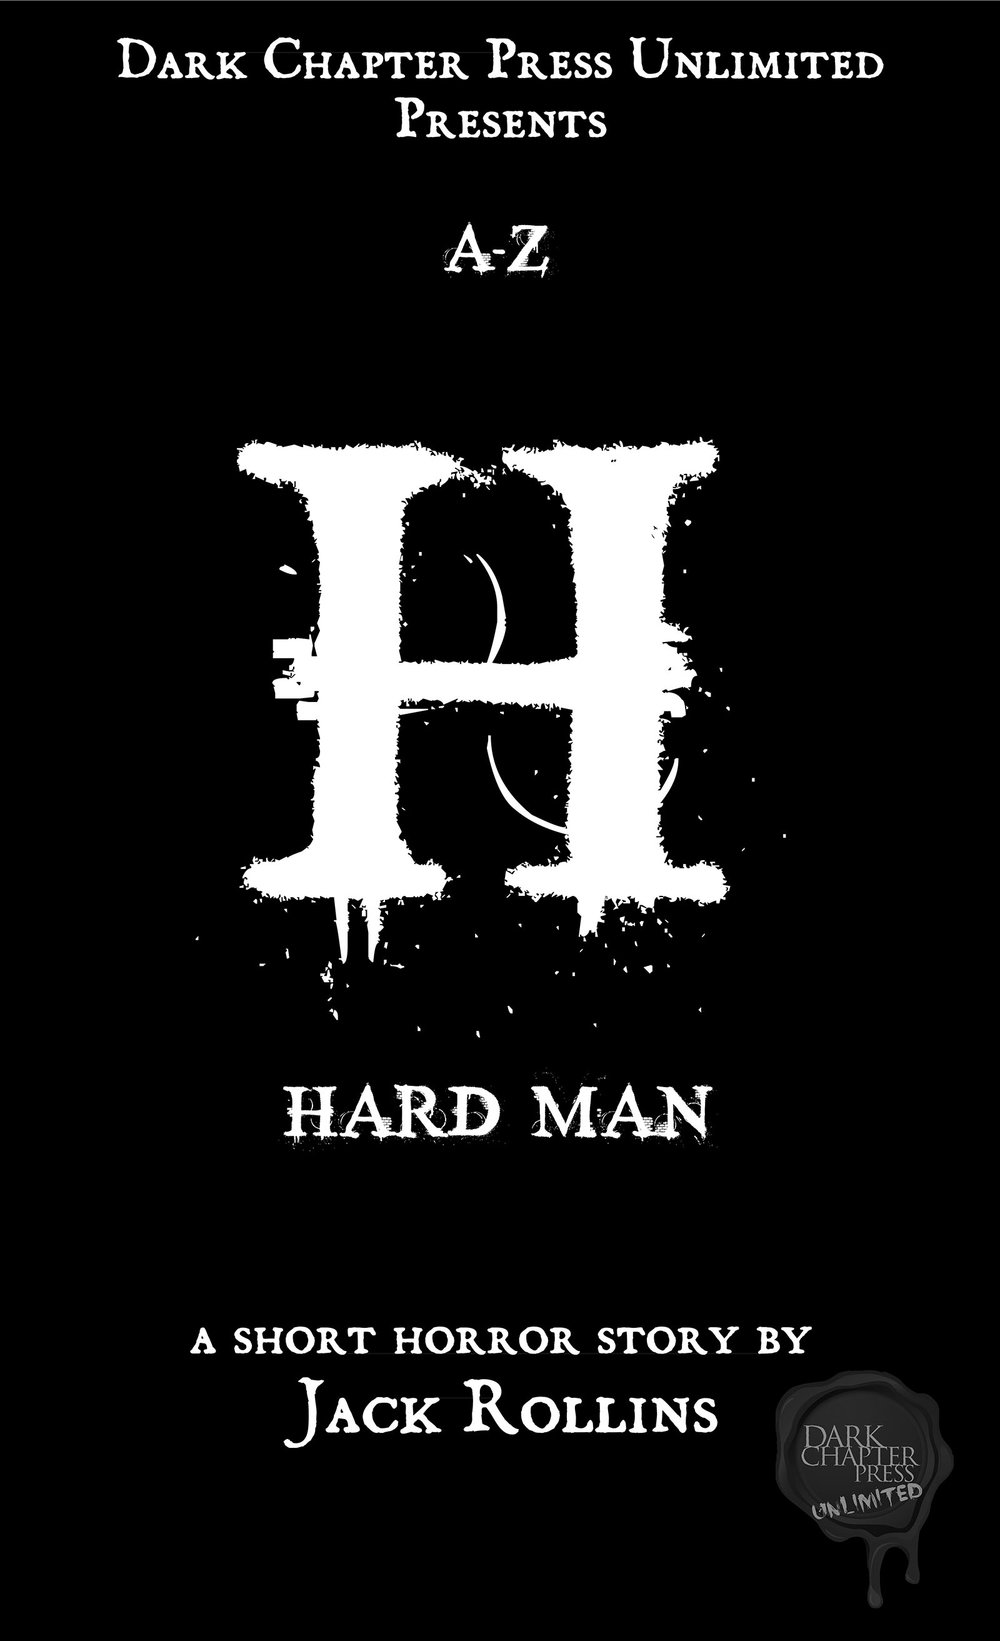 Hard Man, by Jack Rollins Ruling the dark underworld of Tilwick is no easy feat, but Eddie Garfield does so with brutal efficiency.  For sixty years, he has abided by two simple rules, rules that have painted the cobbles with splattered blood and broken teeth, and forged an impressive legacy. But sixty years is a long time ... people are becoming restless; the criminal young bloods are ambitious and hungry to take their slice of the pie, and they'll do anything to obtain it. Even if it means taking down one of their own... Hard Man takes place in the mysterious town of Tilwick, where the demon Mammon is worshipped as a god. The town featured in Rollins' story 'Home, Sweet Home' (Kill For A Copy, Dark Chapter Press), and will soon provide the chilling backdrop for his long-awaited novel, Carsun.